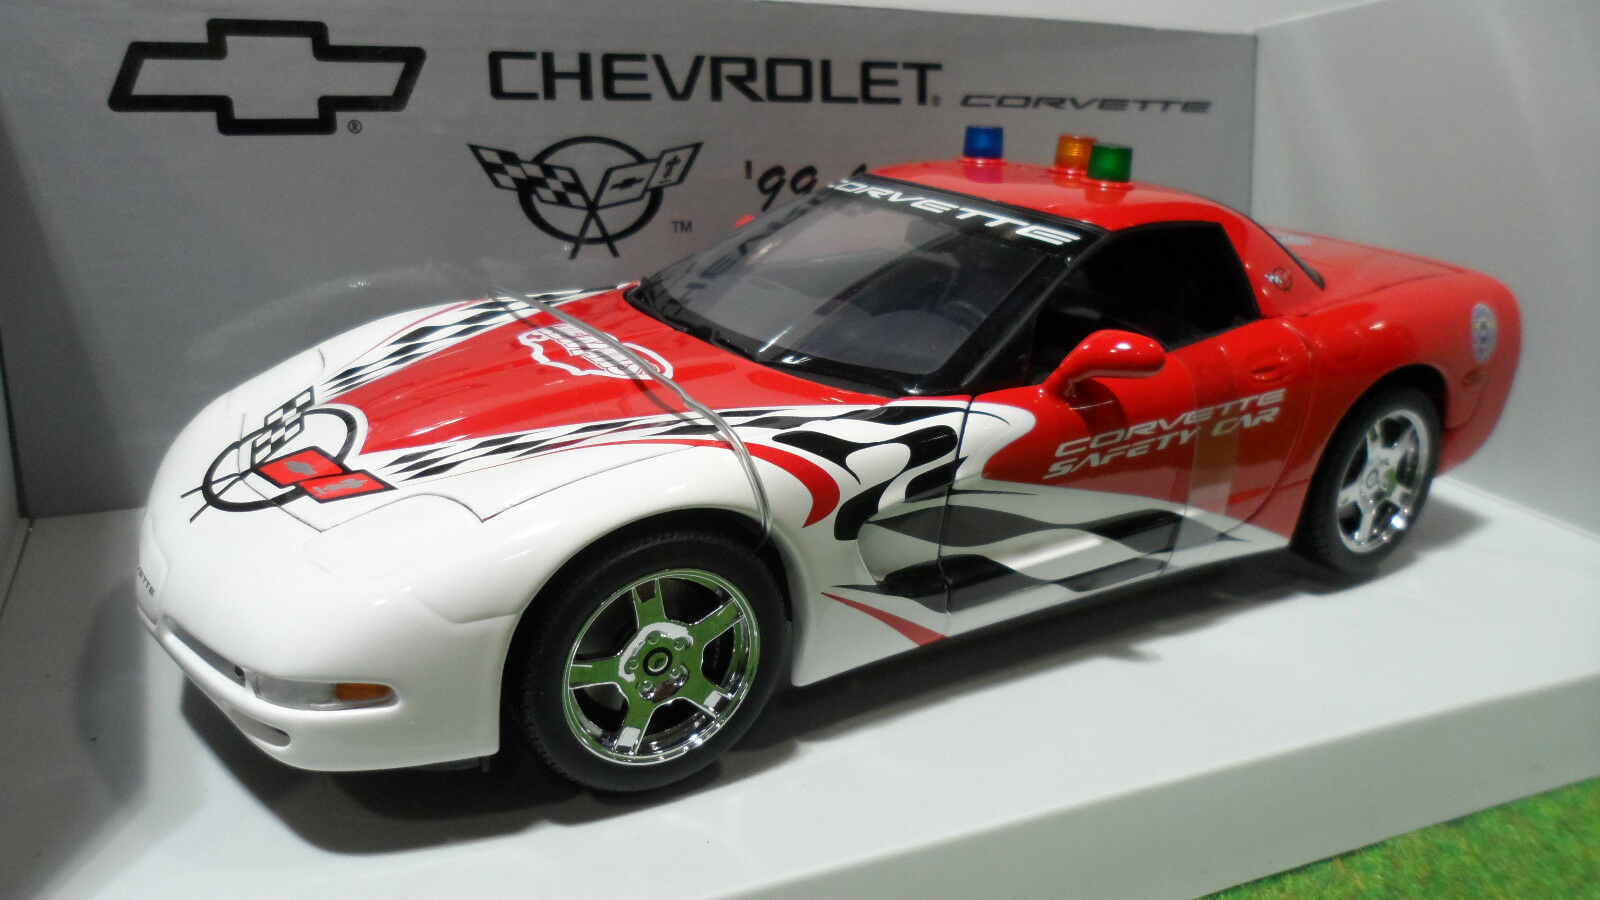 CHEVROLET CORVETTE SAFETY CAR LE MANS 1999 1 18 UT Models 39921 voiture miniatur